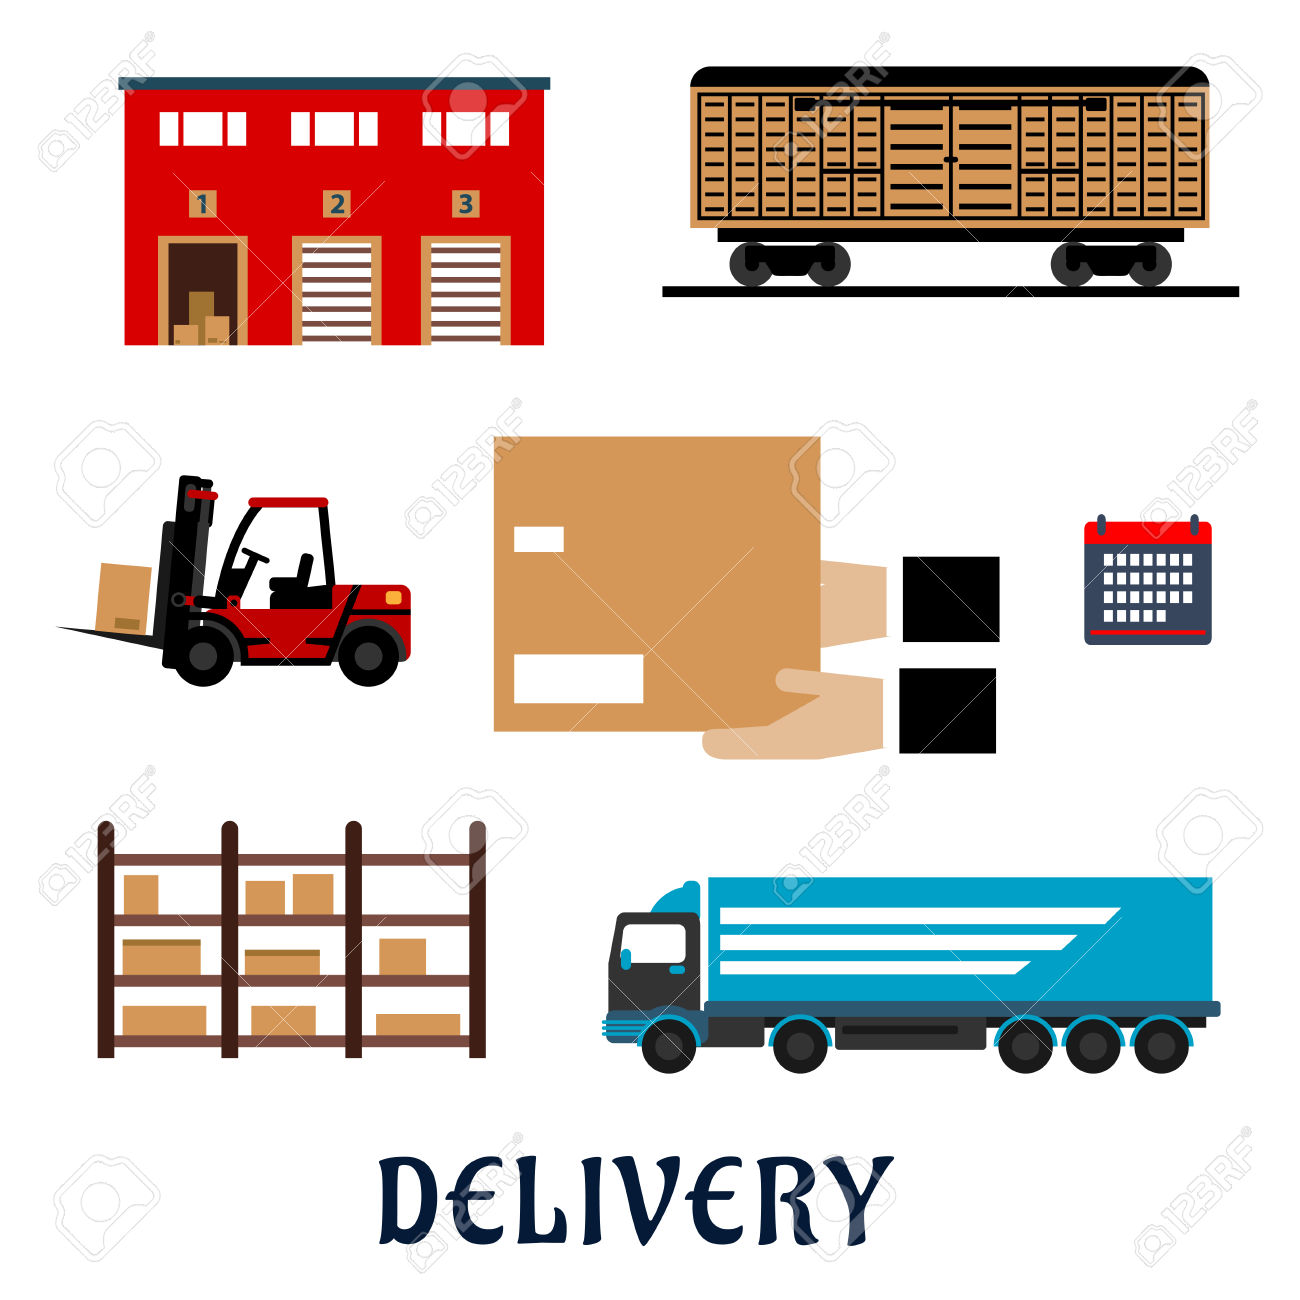 Delivery Service Flat Icons With Warehouse Building, Freight.